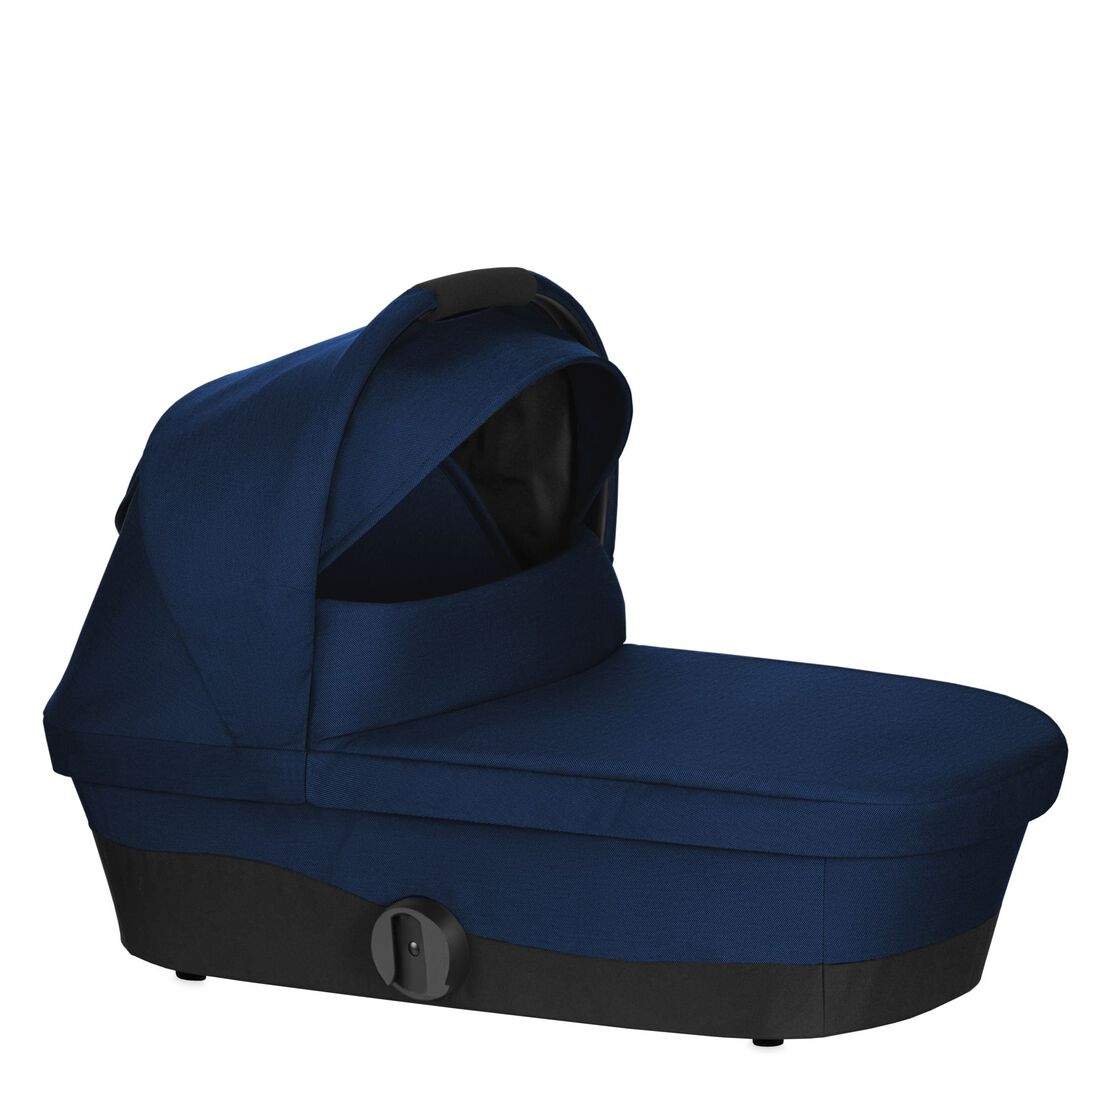 CYBEX Melio Cot - Navy Blue in Navy Blue large image number 2